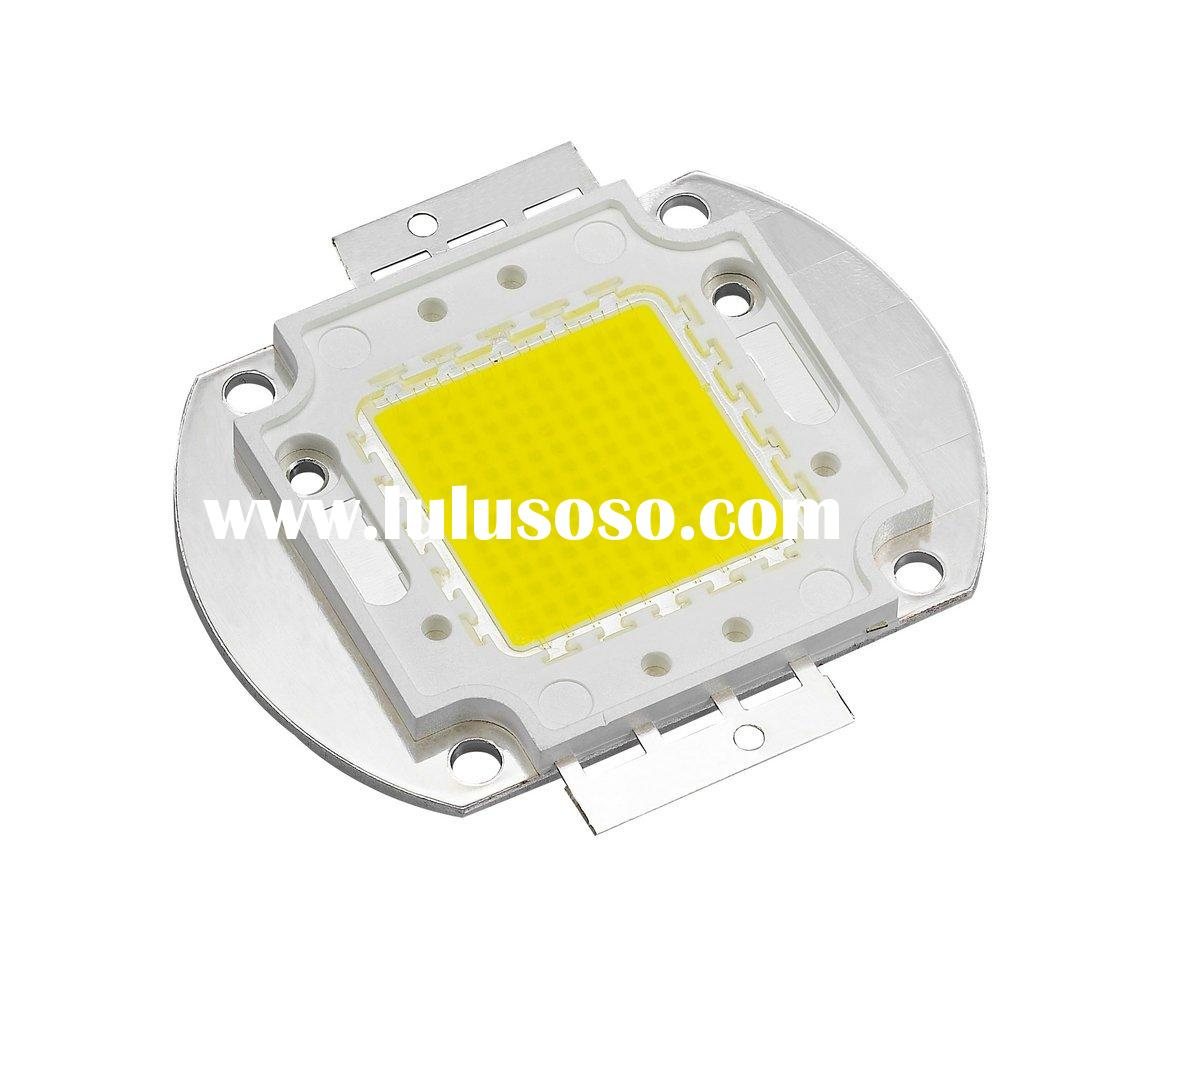 BEST Selling High Power LED---HOT!!!